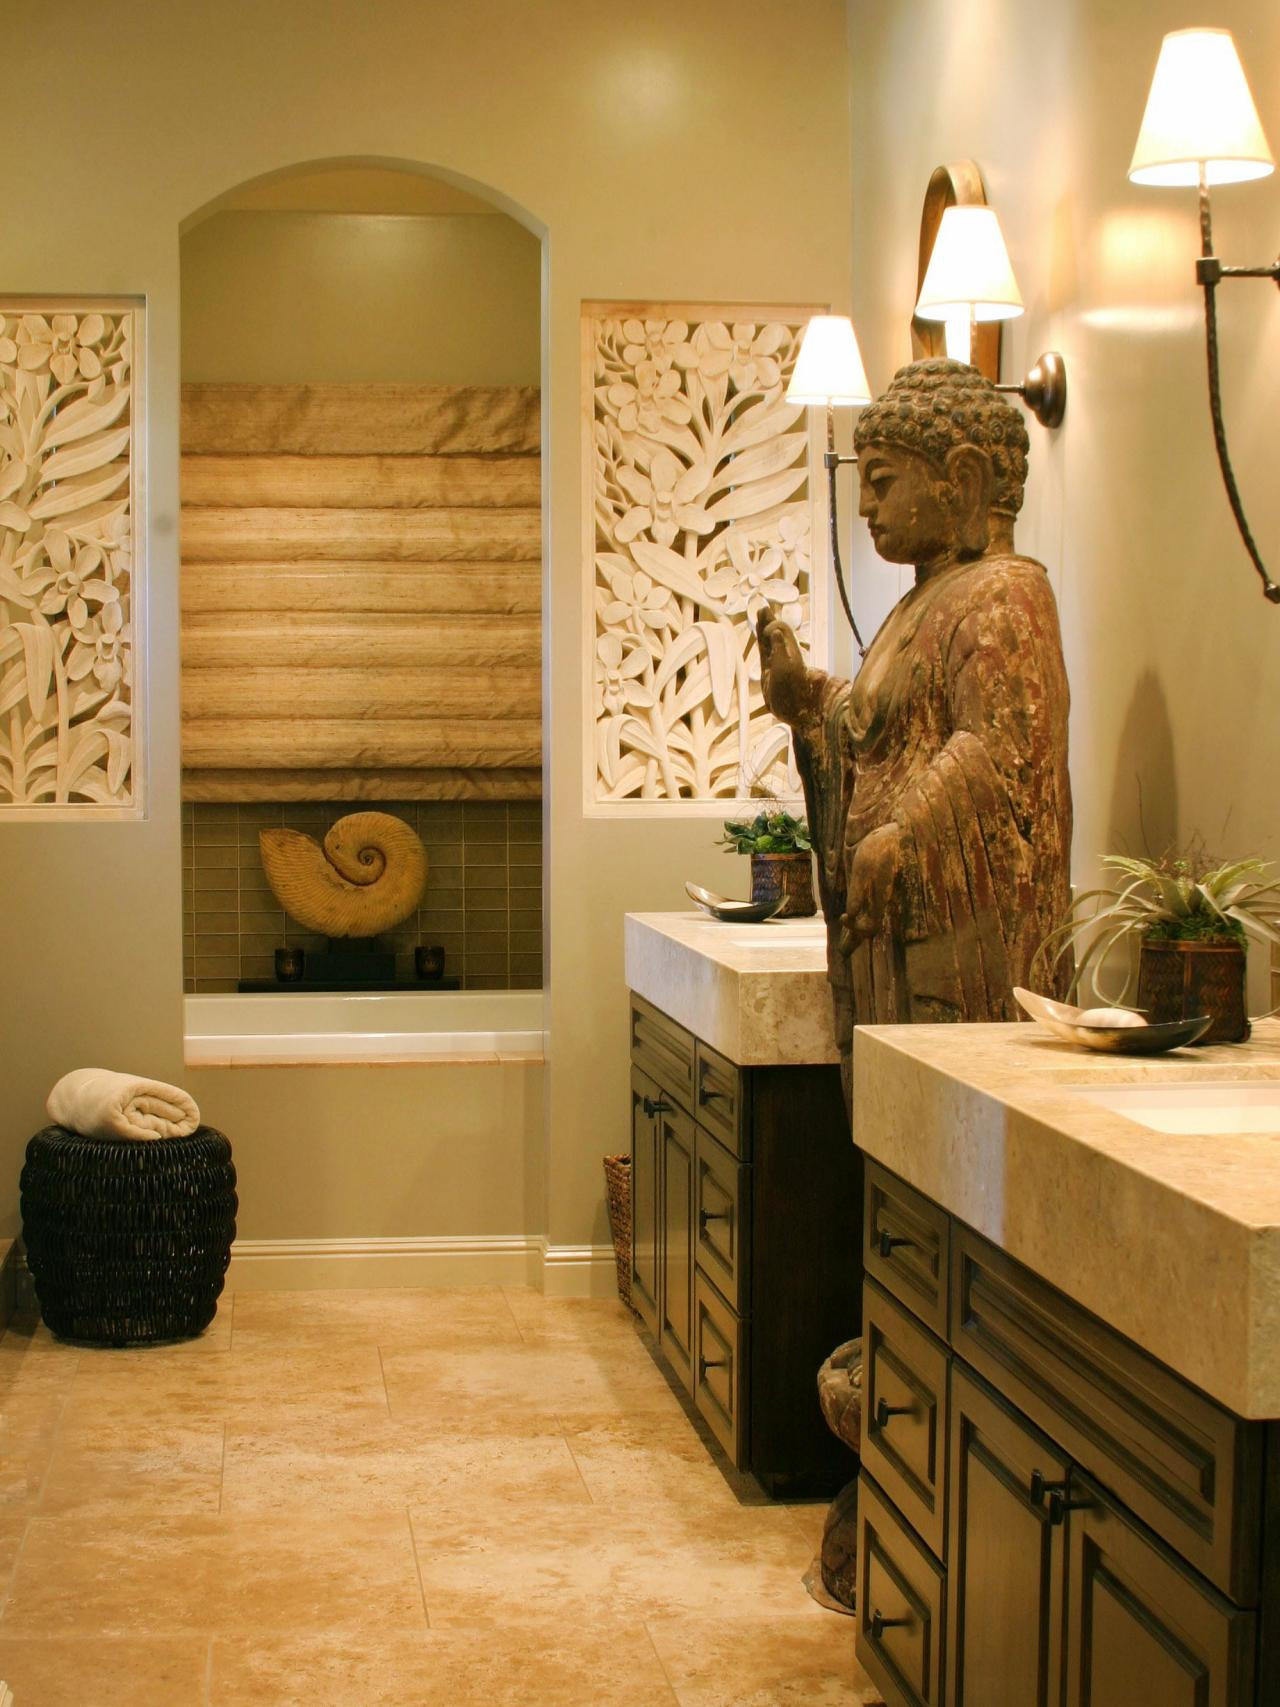 Asian design ideas interior design styles and color for Bathroom decor inspiration